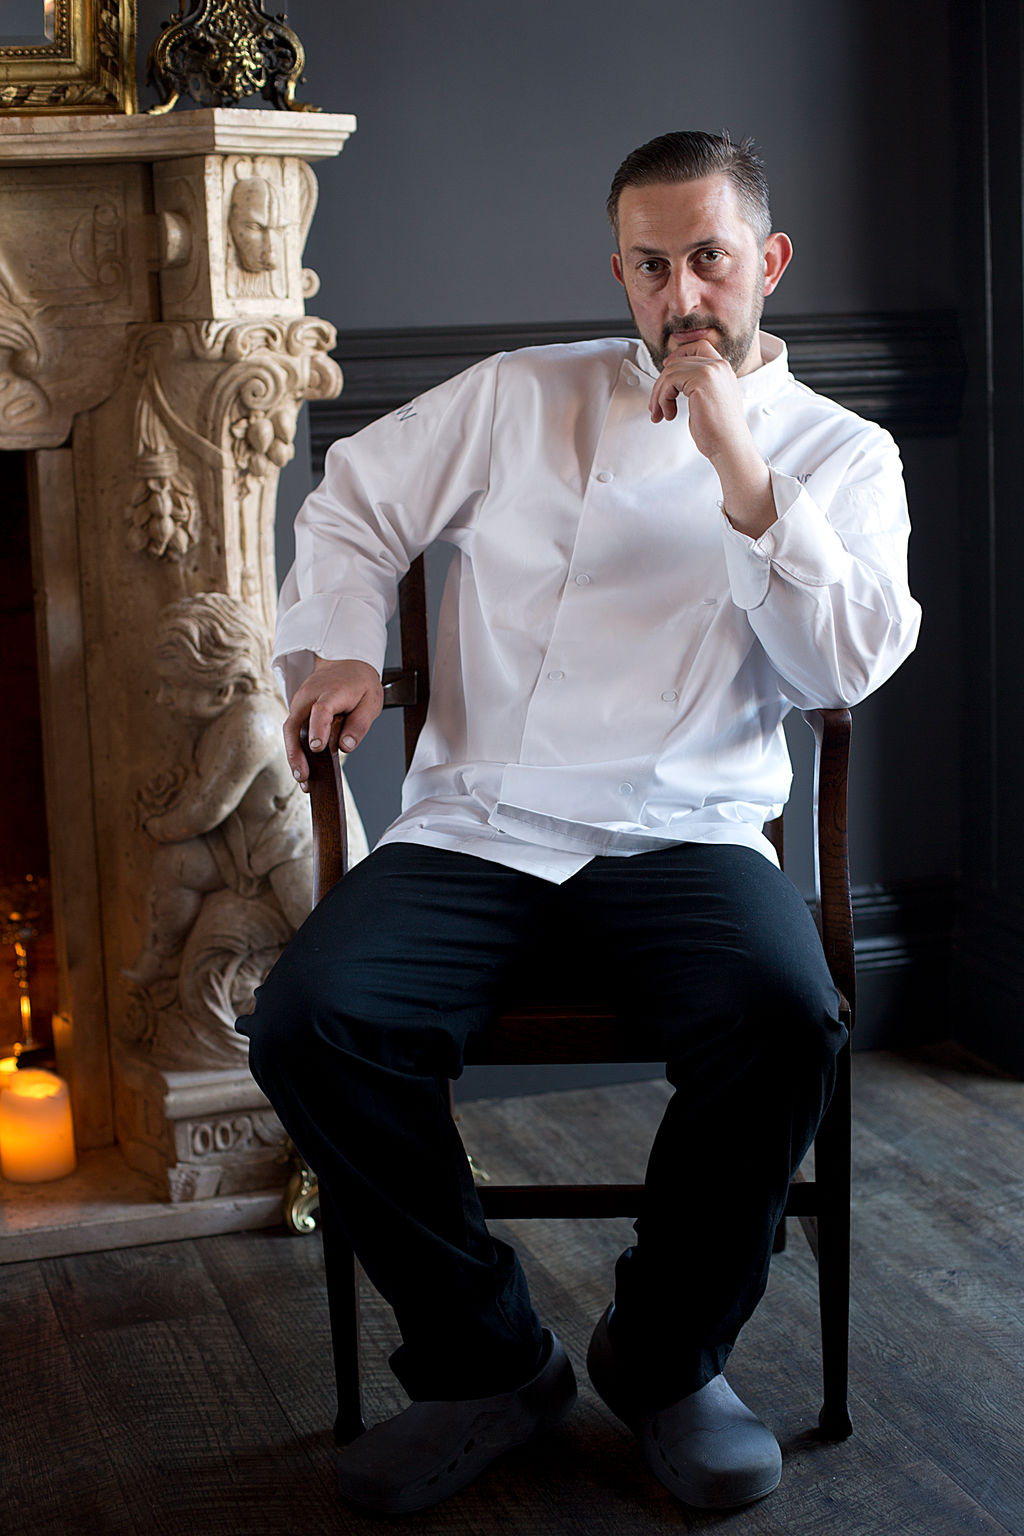 Chef portait UK, photograph of chef seated